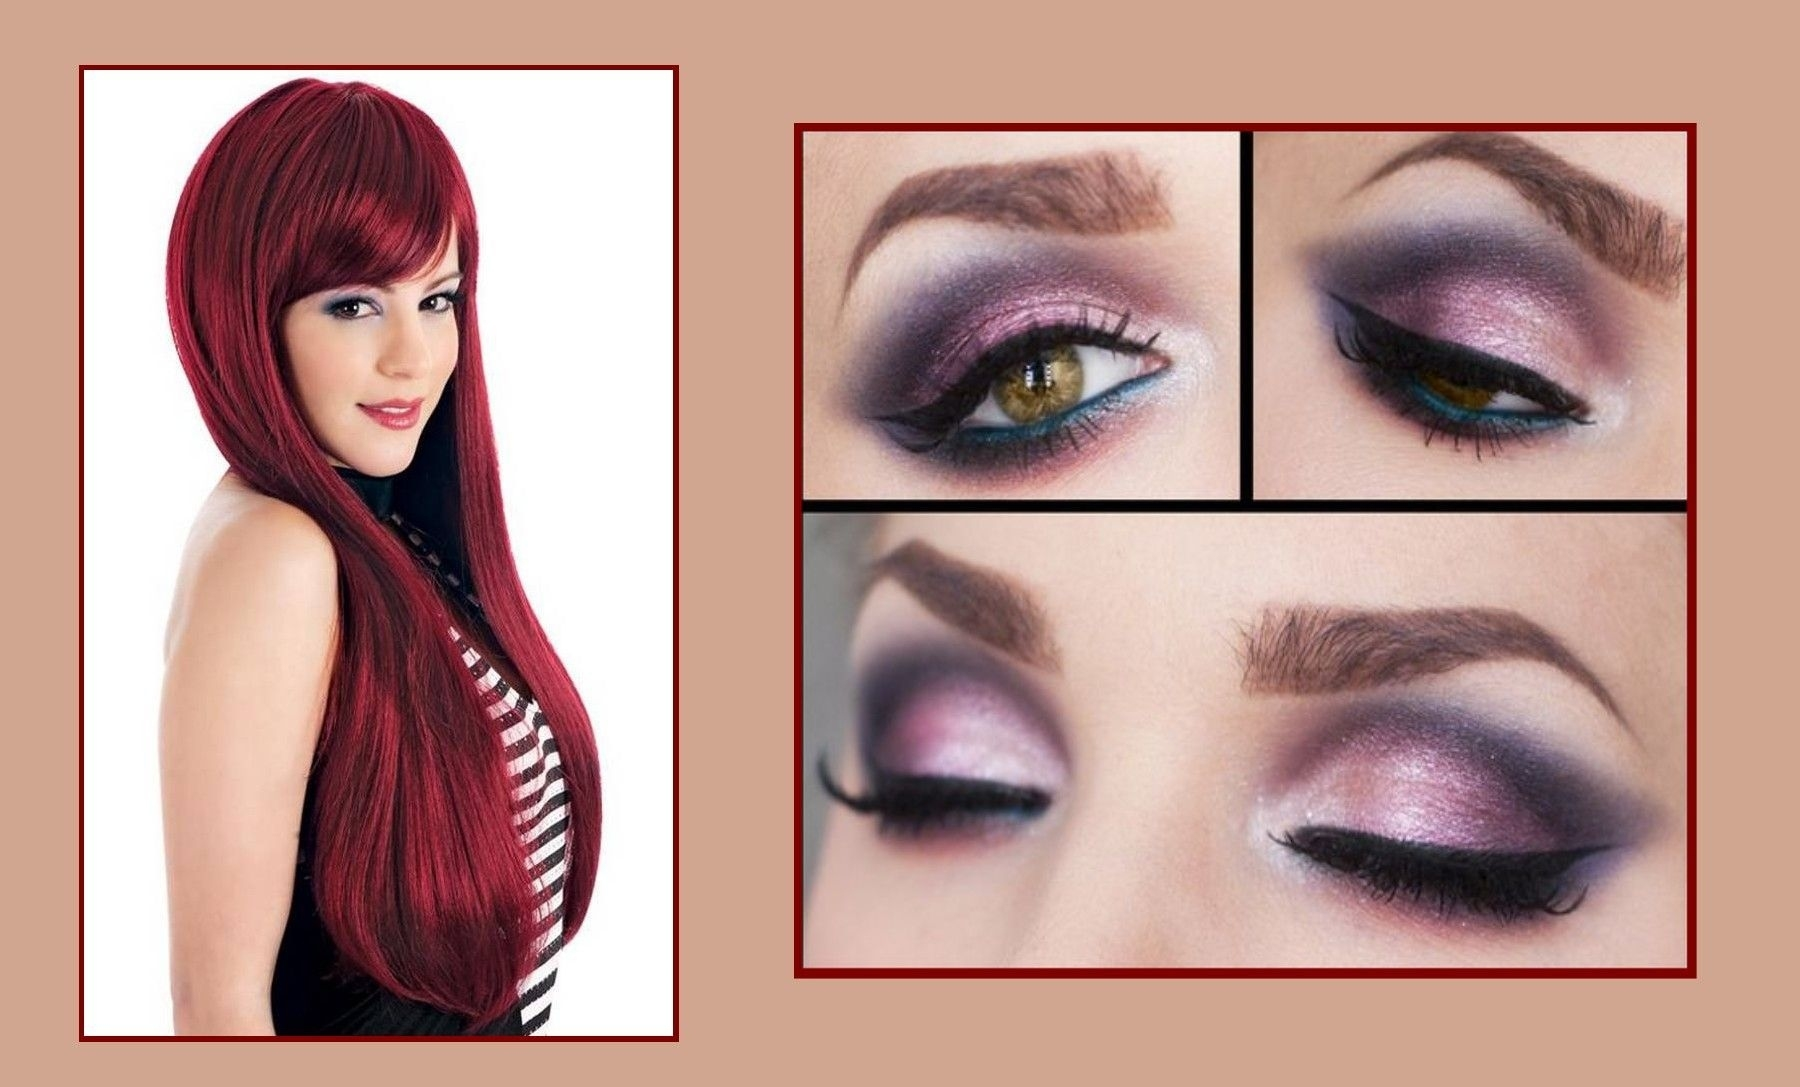 Makeup Tips For Hazel Eyes And Red Hair Makeupgenk Com   Hair And throughout Eyeshadow For Red Hair And Hazel Eyes